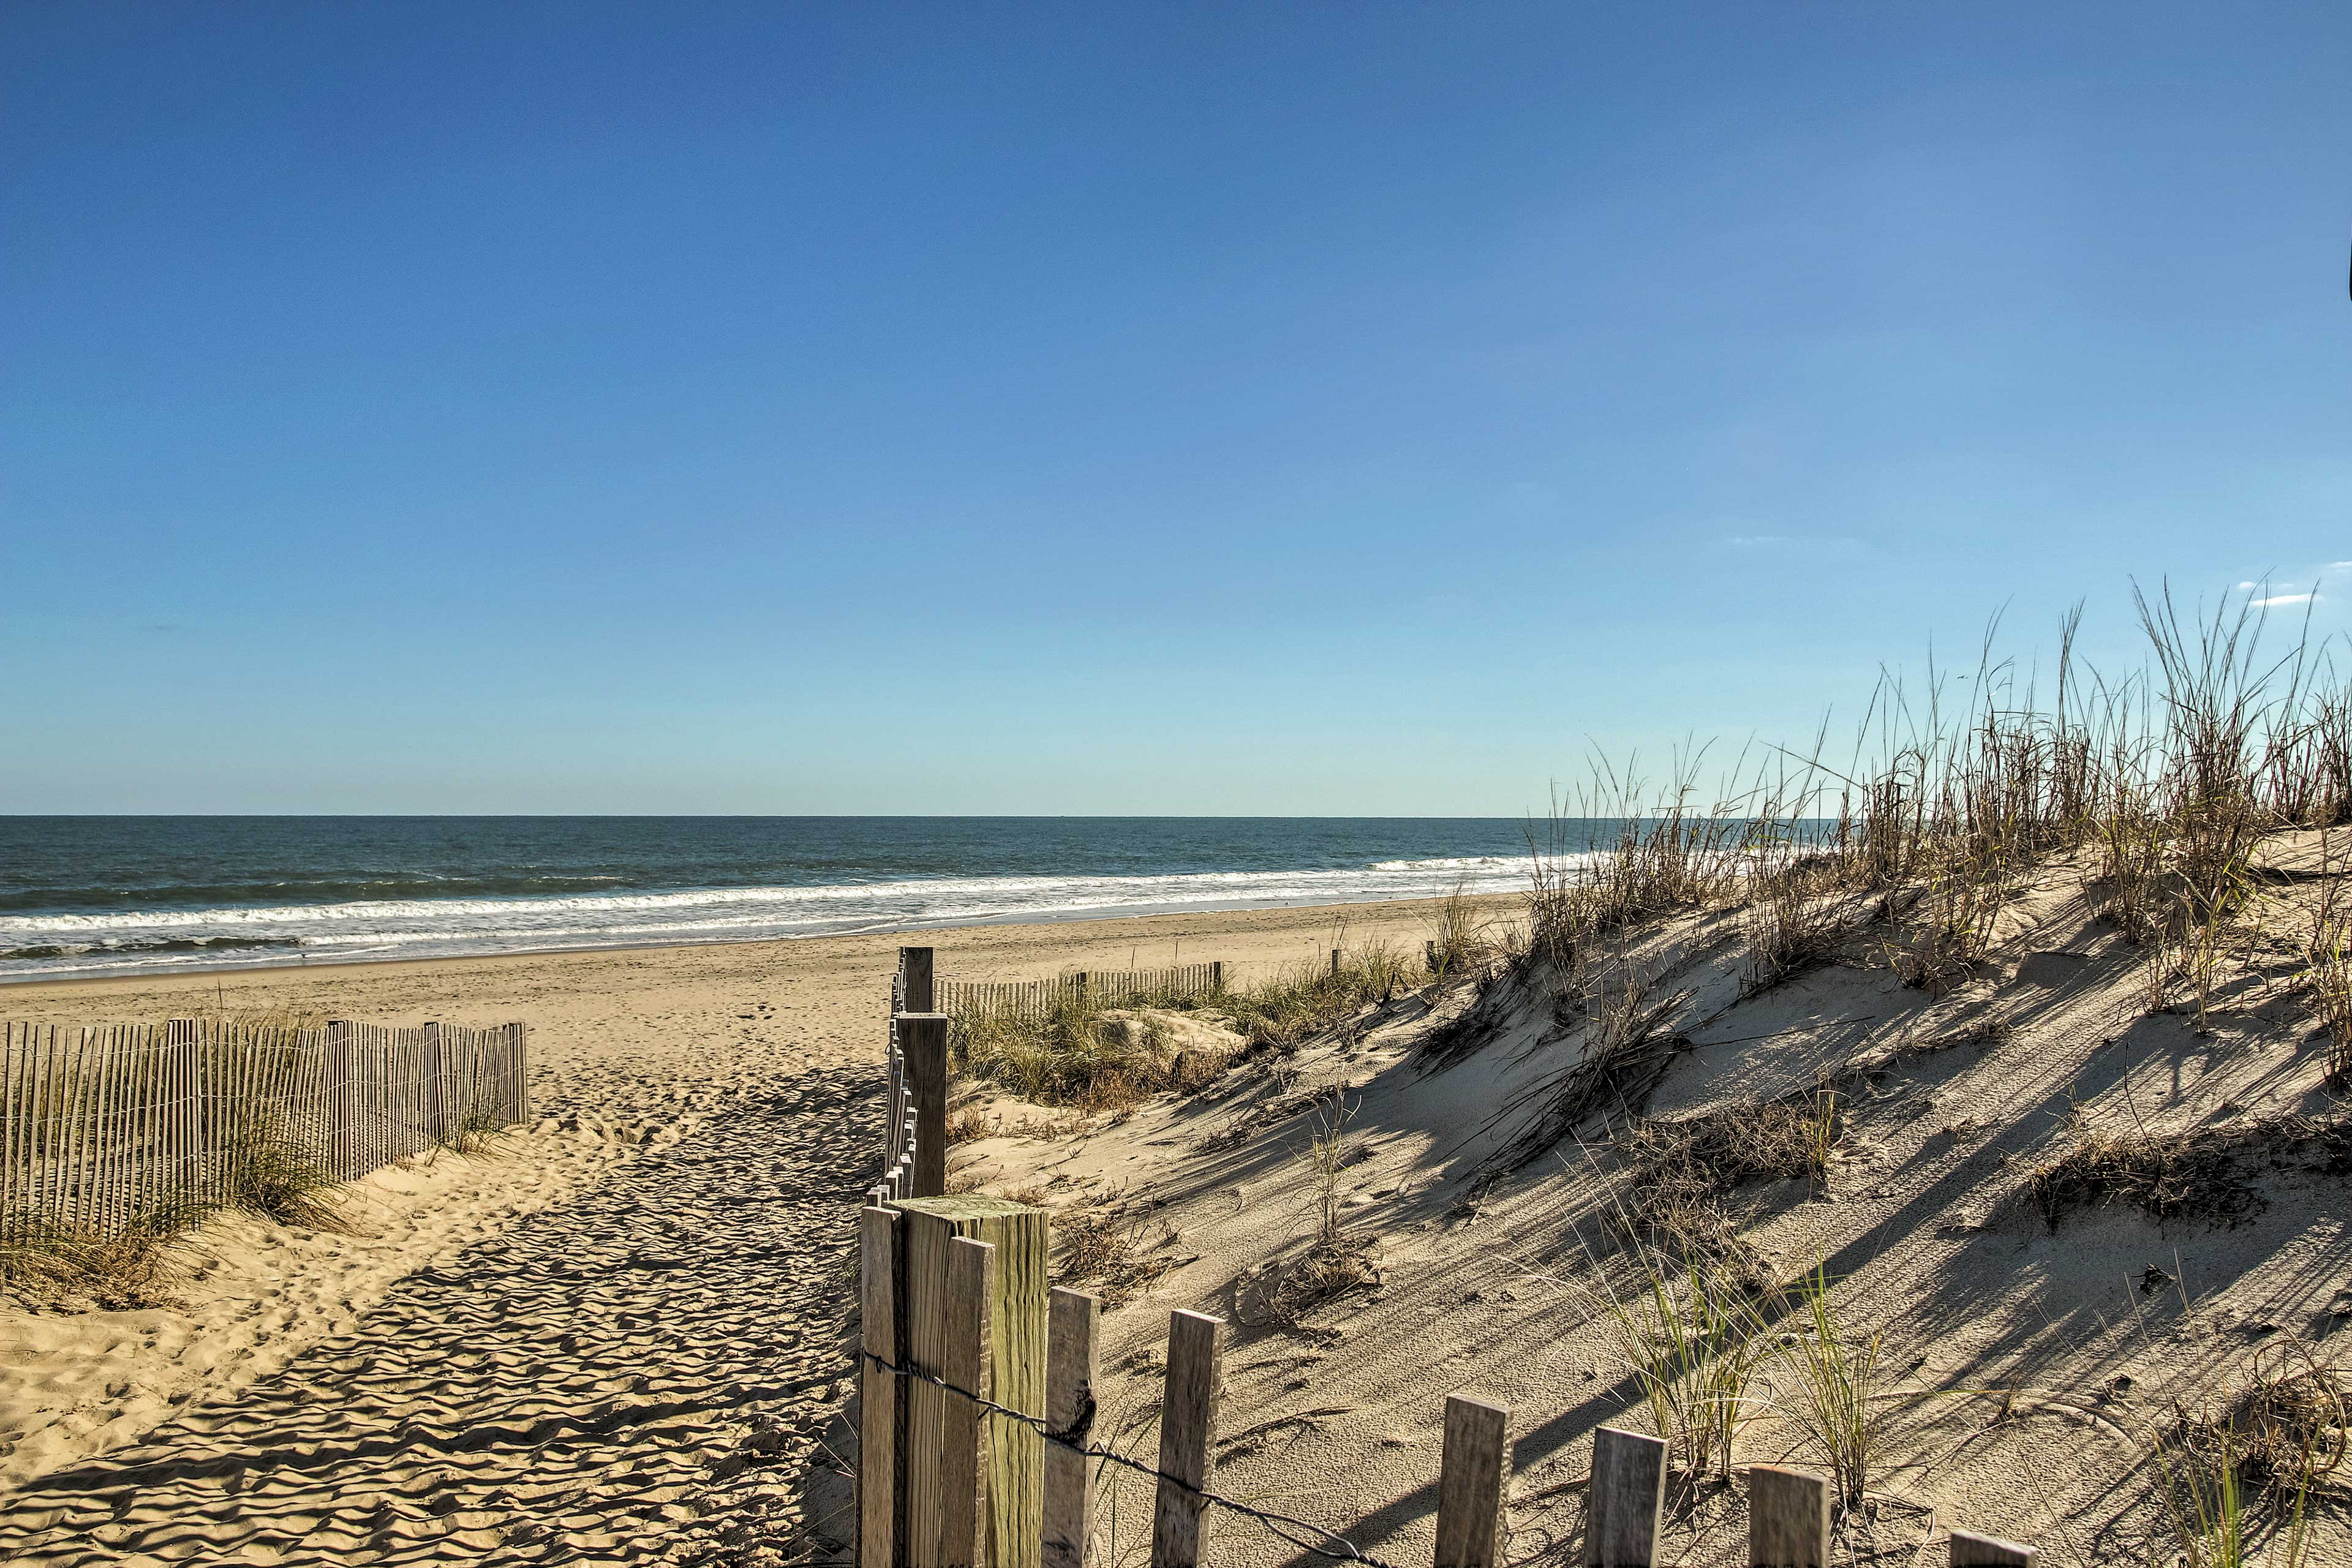 The condo lies just a short, leisurely walk from the sandy shoreline.